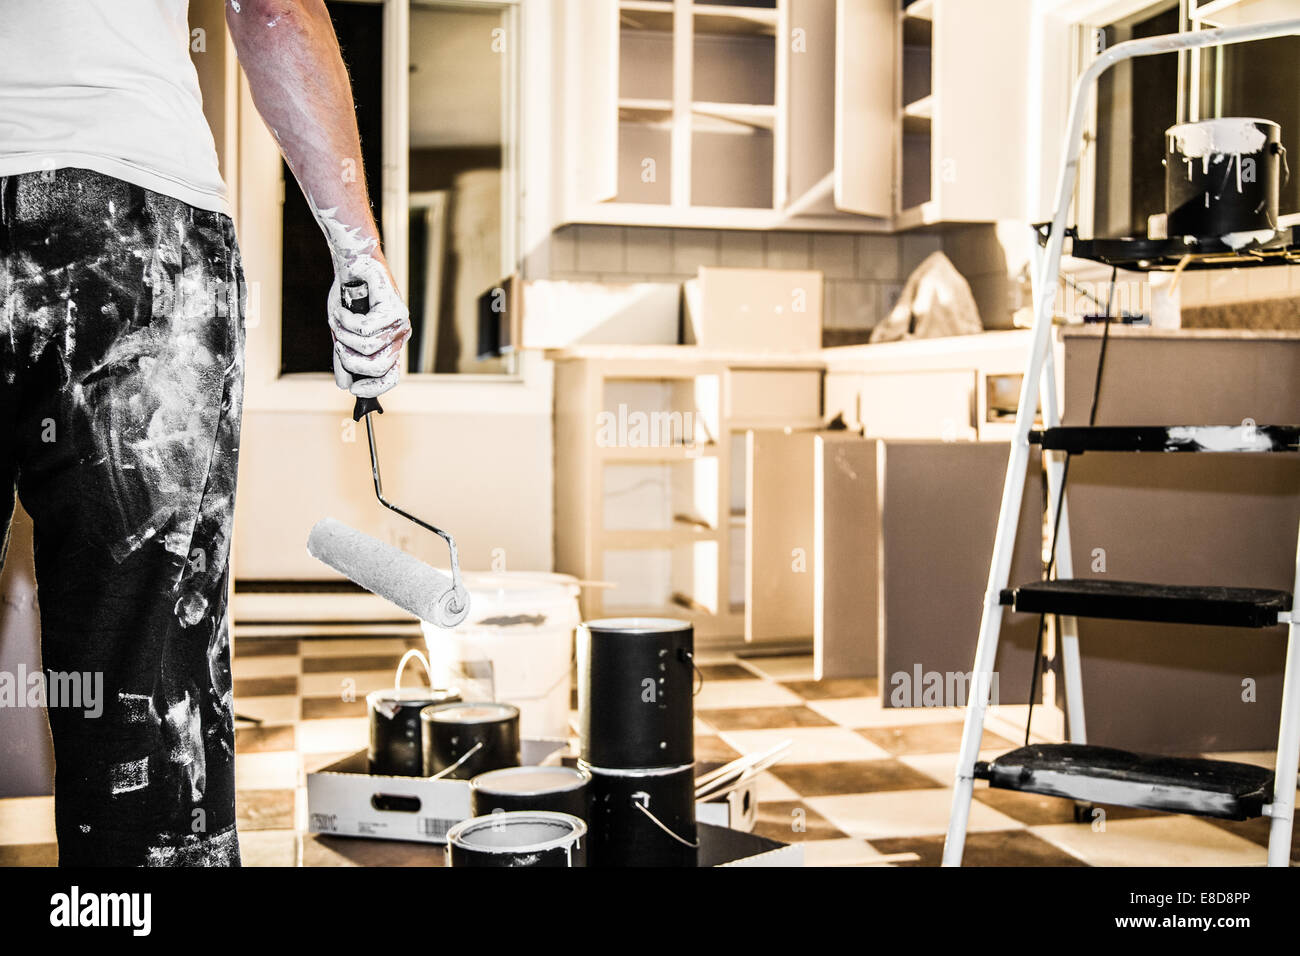 Mess of All kind of Painting Equipment in the Kitchen and Discouraged Man - Stock Image